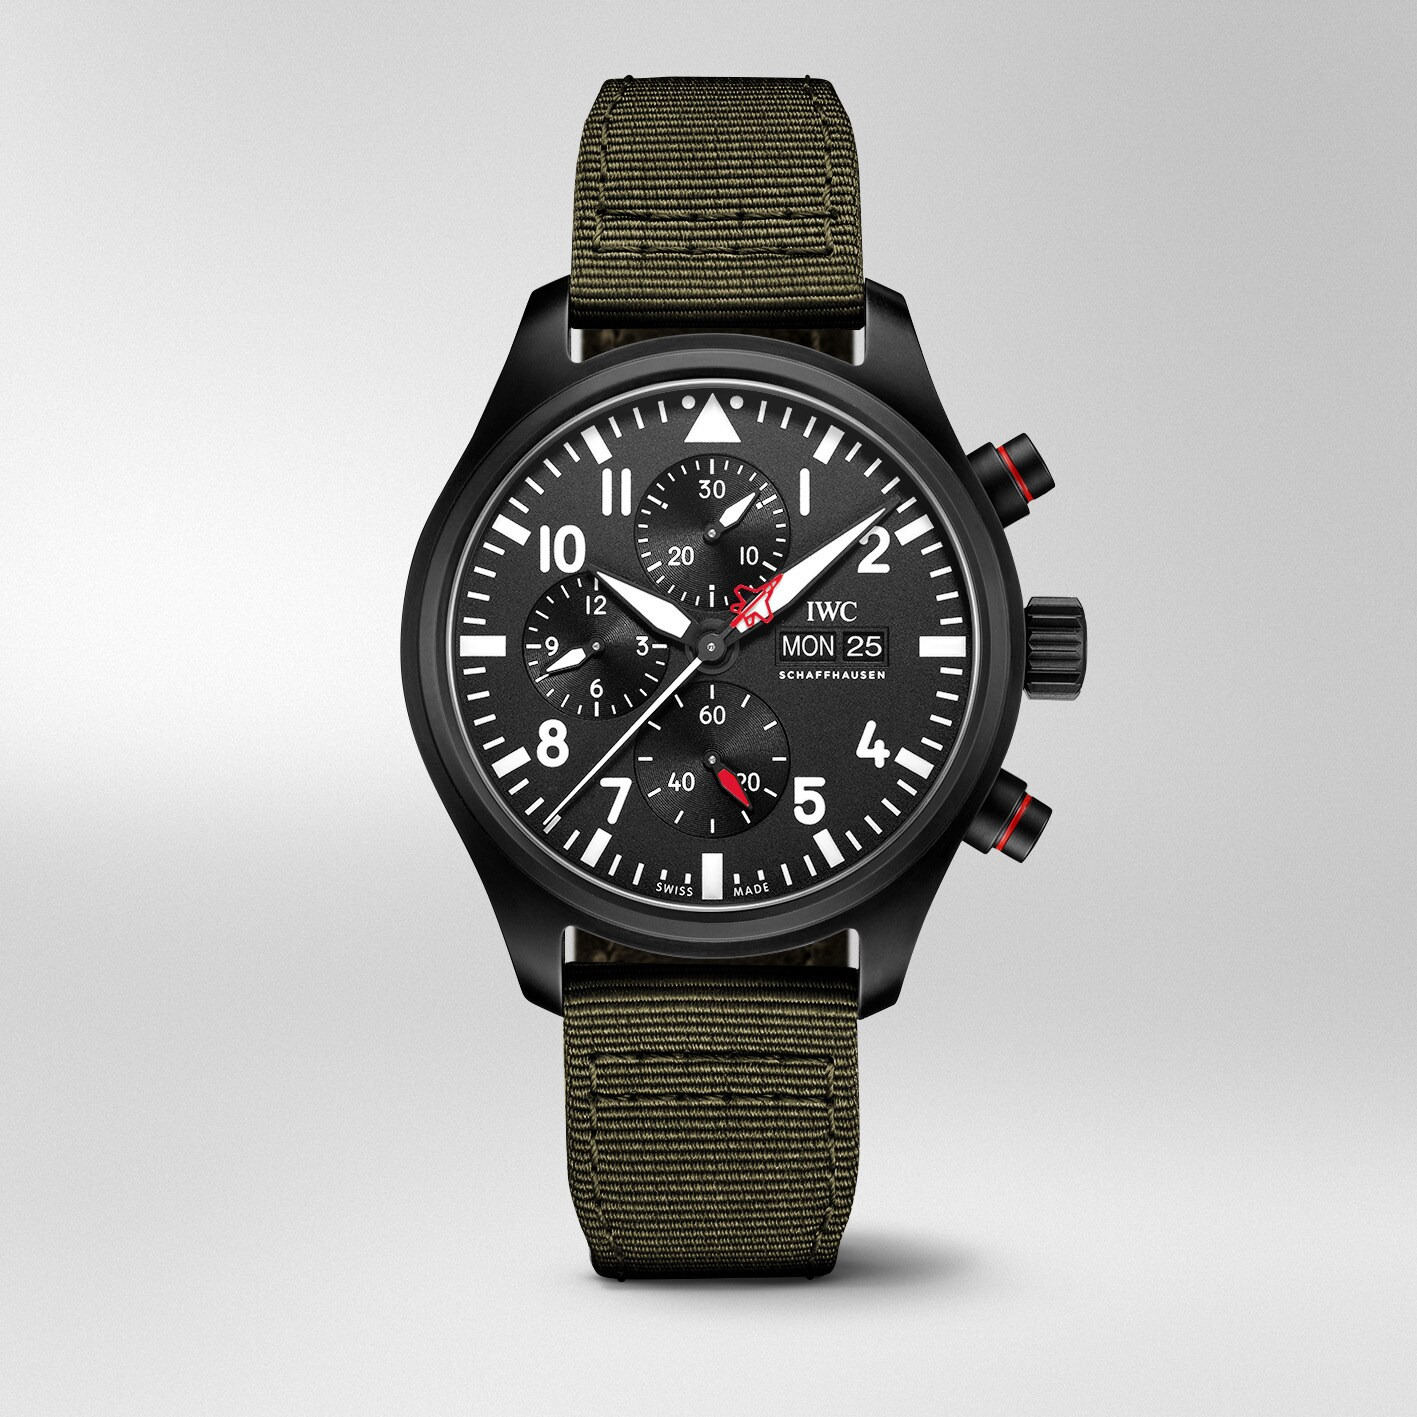 Iwc Pilot Watch Chronograph Top Gun Edition SFTI IW389104